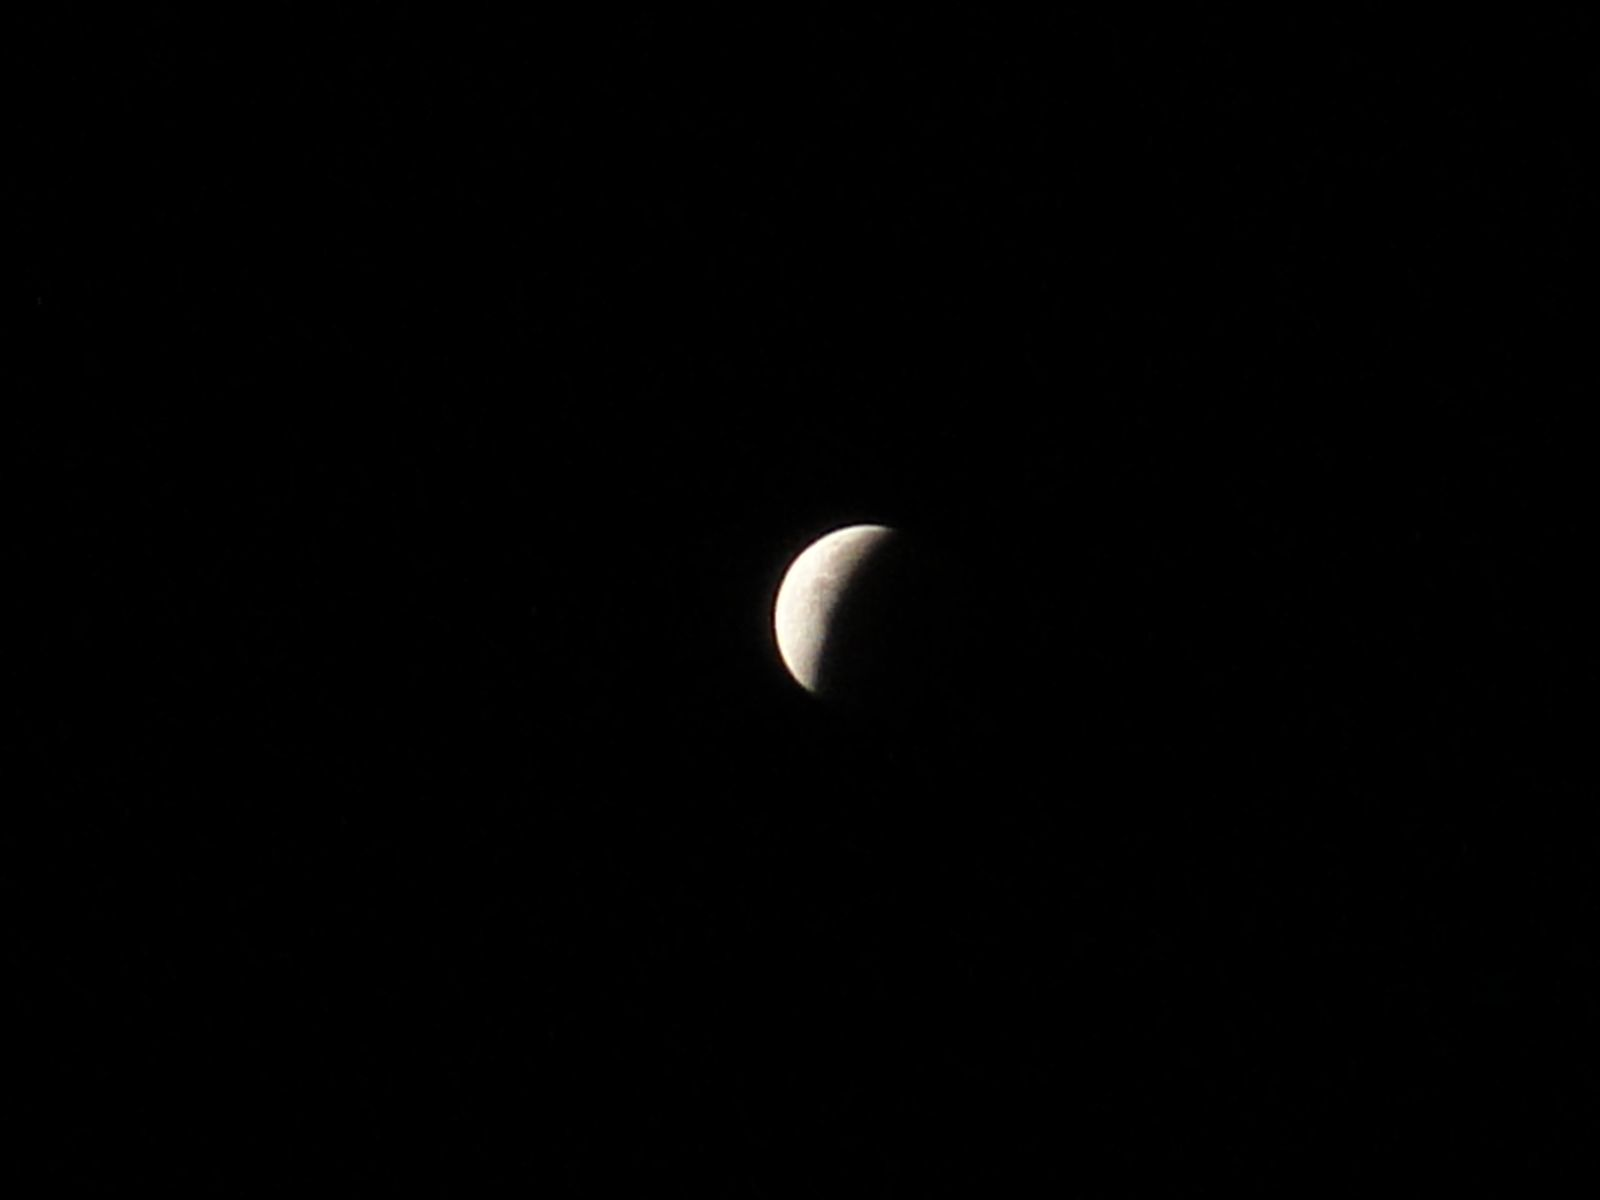 lunar_eclipse_170.jpg